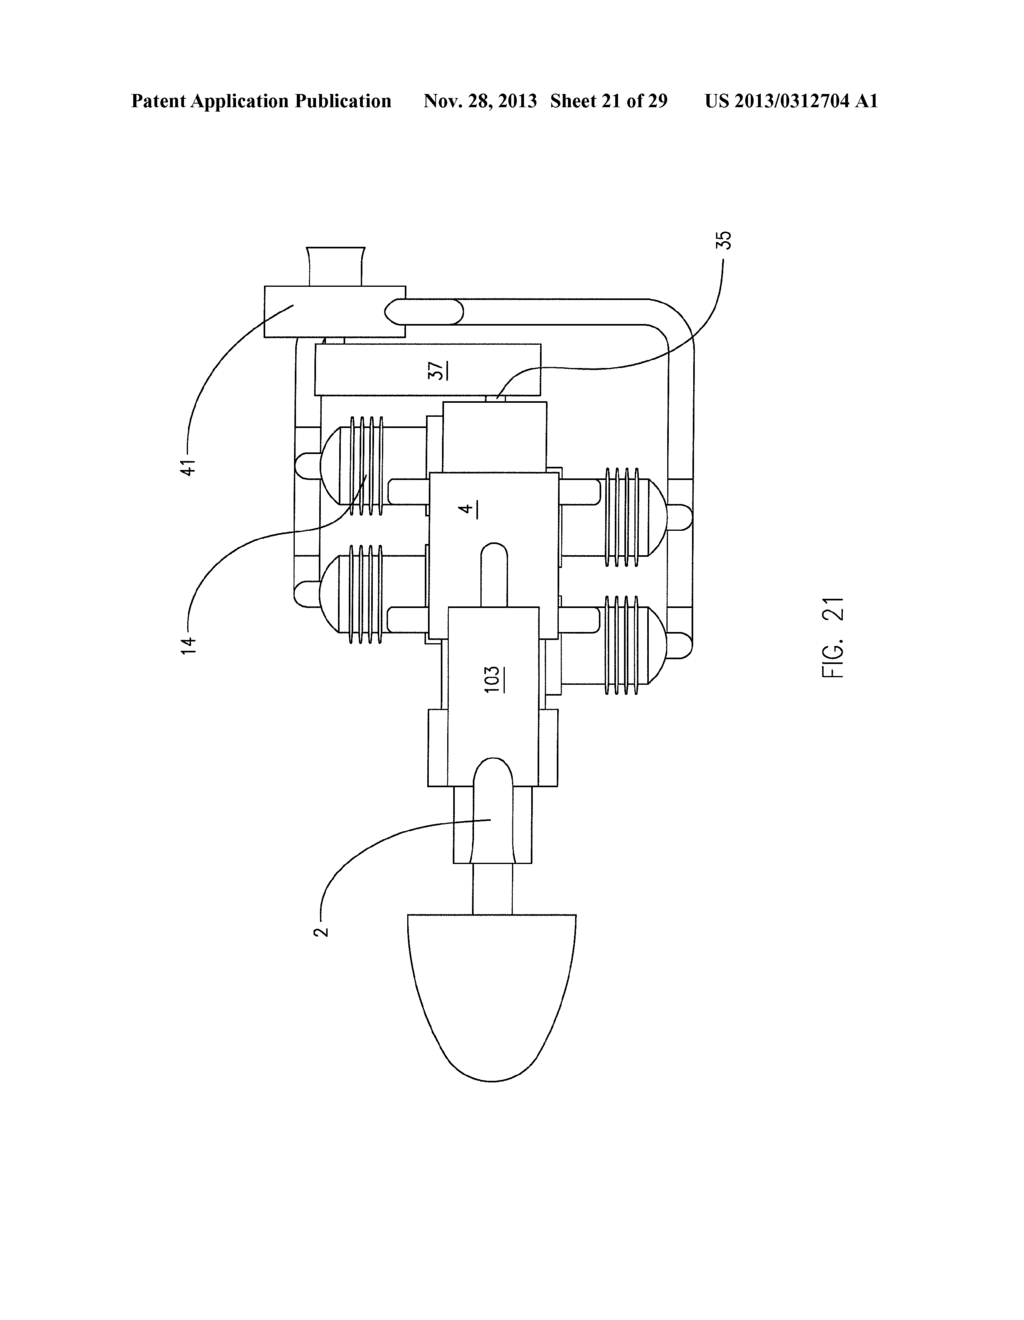 Two Stroke Uniflow Turbo Compound Internal Combustion Engine Diagram Schematic And Image 22